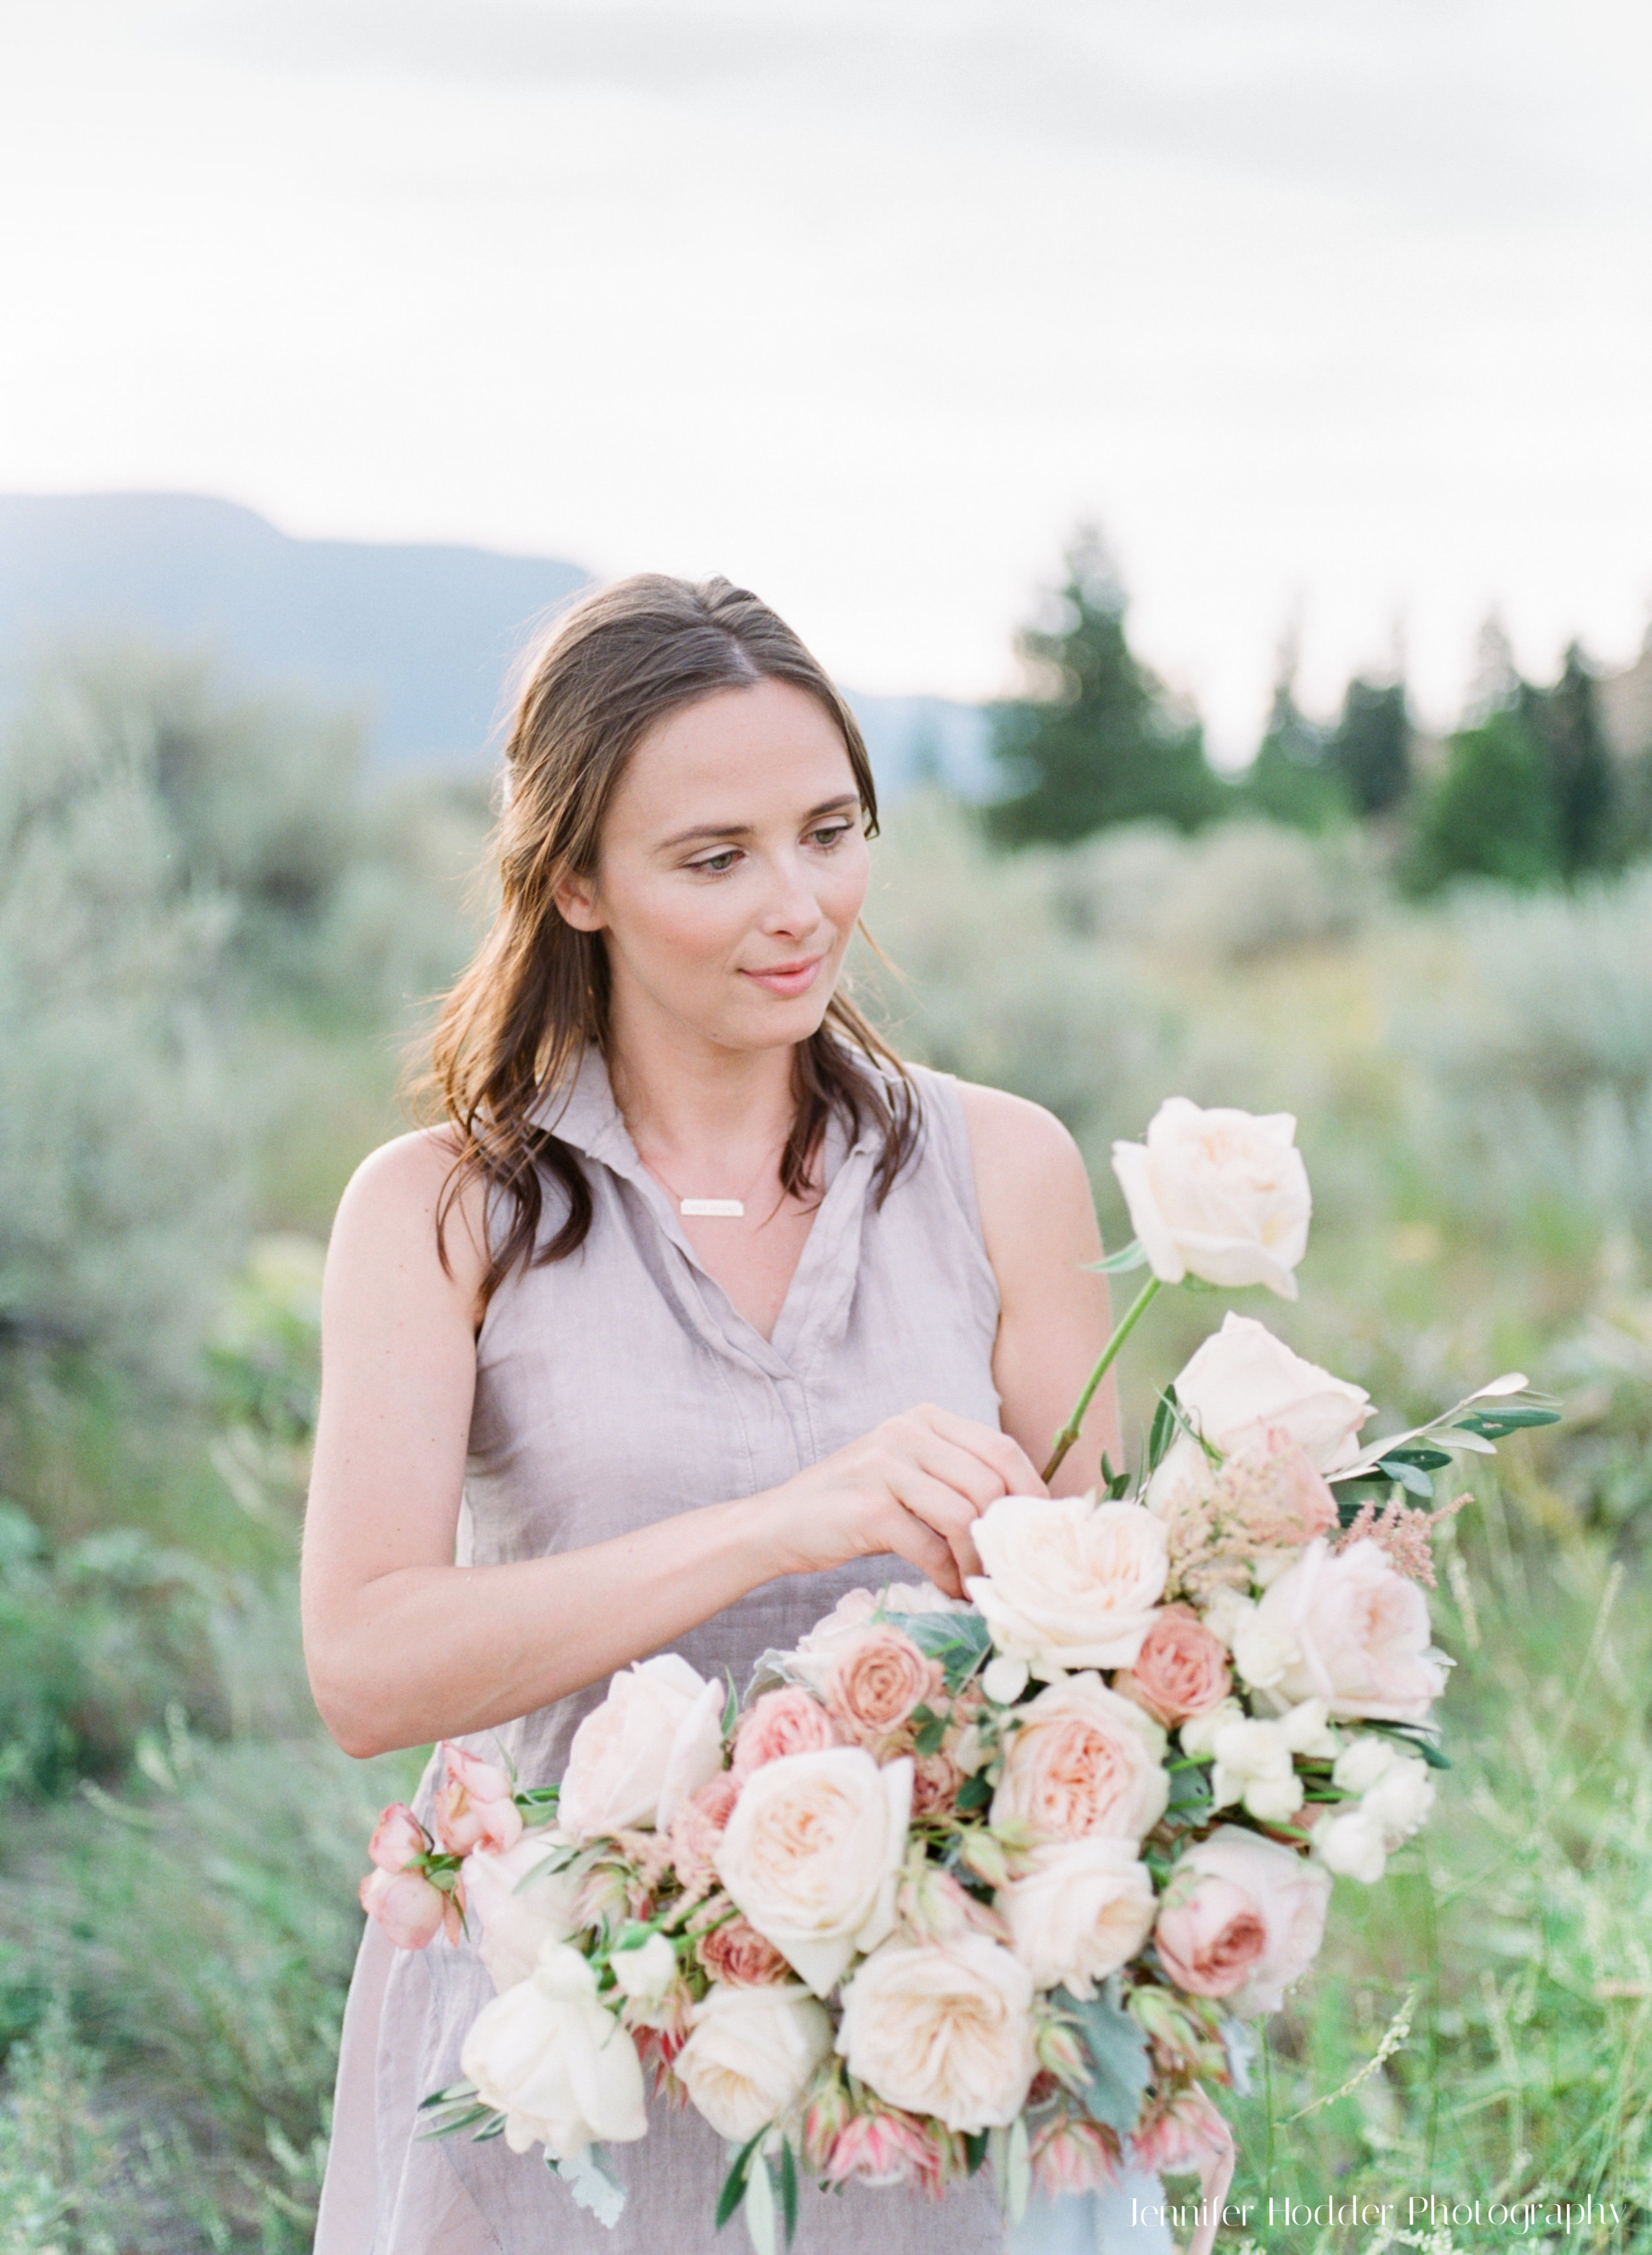 My story... - Although starting a floral business came later, my first love has always been flowers...My career transition began in the summer of 2017 when I flew to the English countryside for a workshop on small and large scale floral design, and I never looked back!My philosophy of a natural, soft and romantic style is brought to life through free flowing shapes of wildly romantic blooms, understated textural pieces and elegant foliage.My passion is to style and design an event unique to you that maintains a timeless aesthetic.Jane